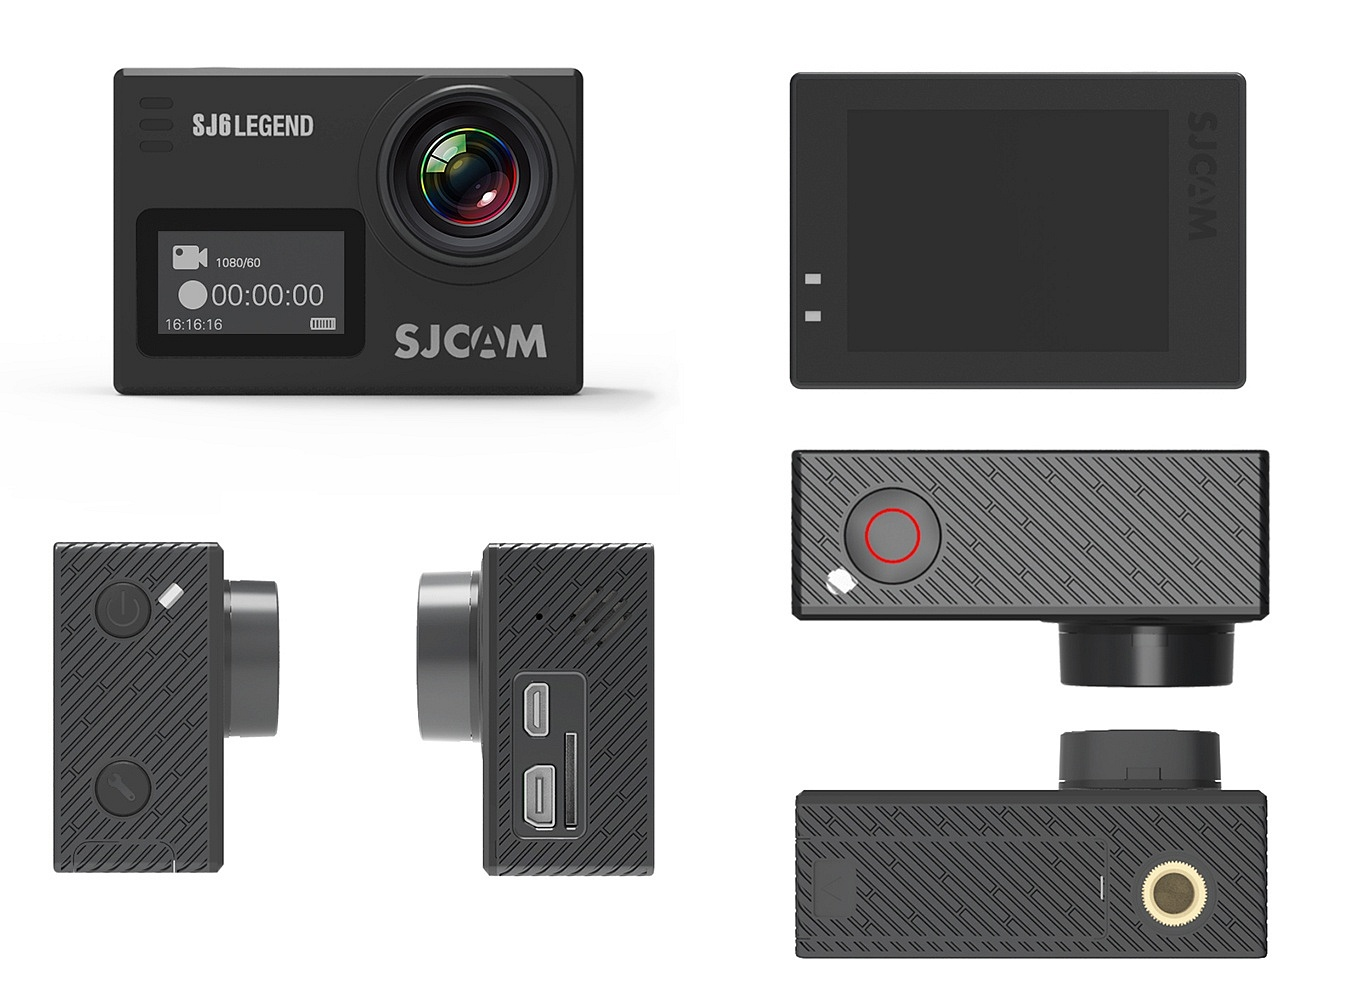 SJCAM SJ6 Legend - Body, Buttons & Ports